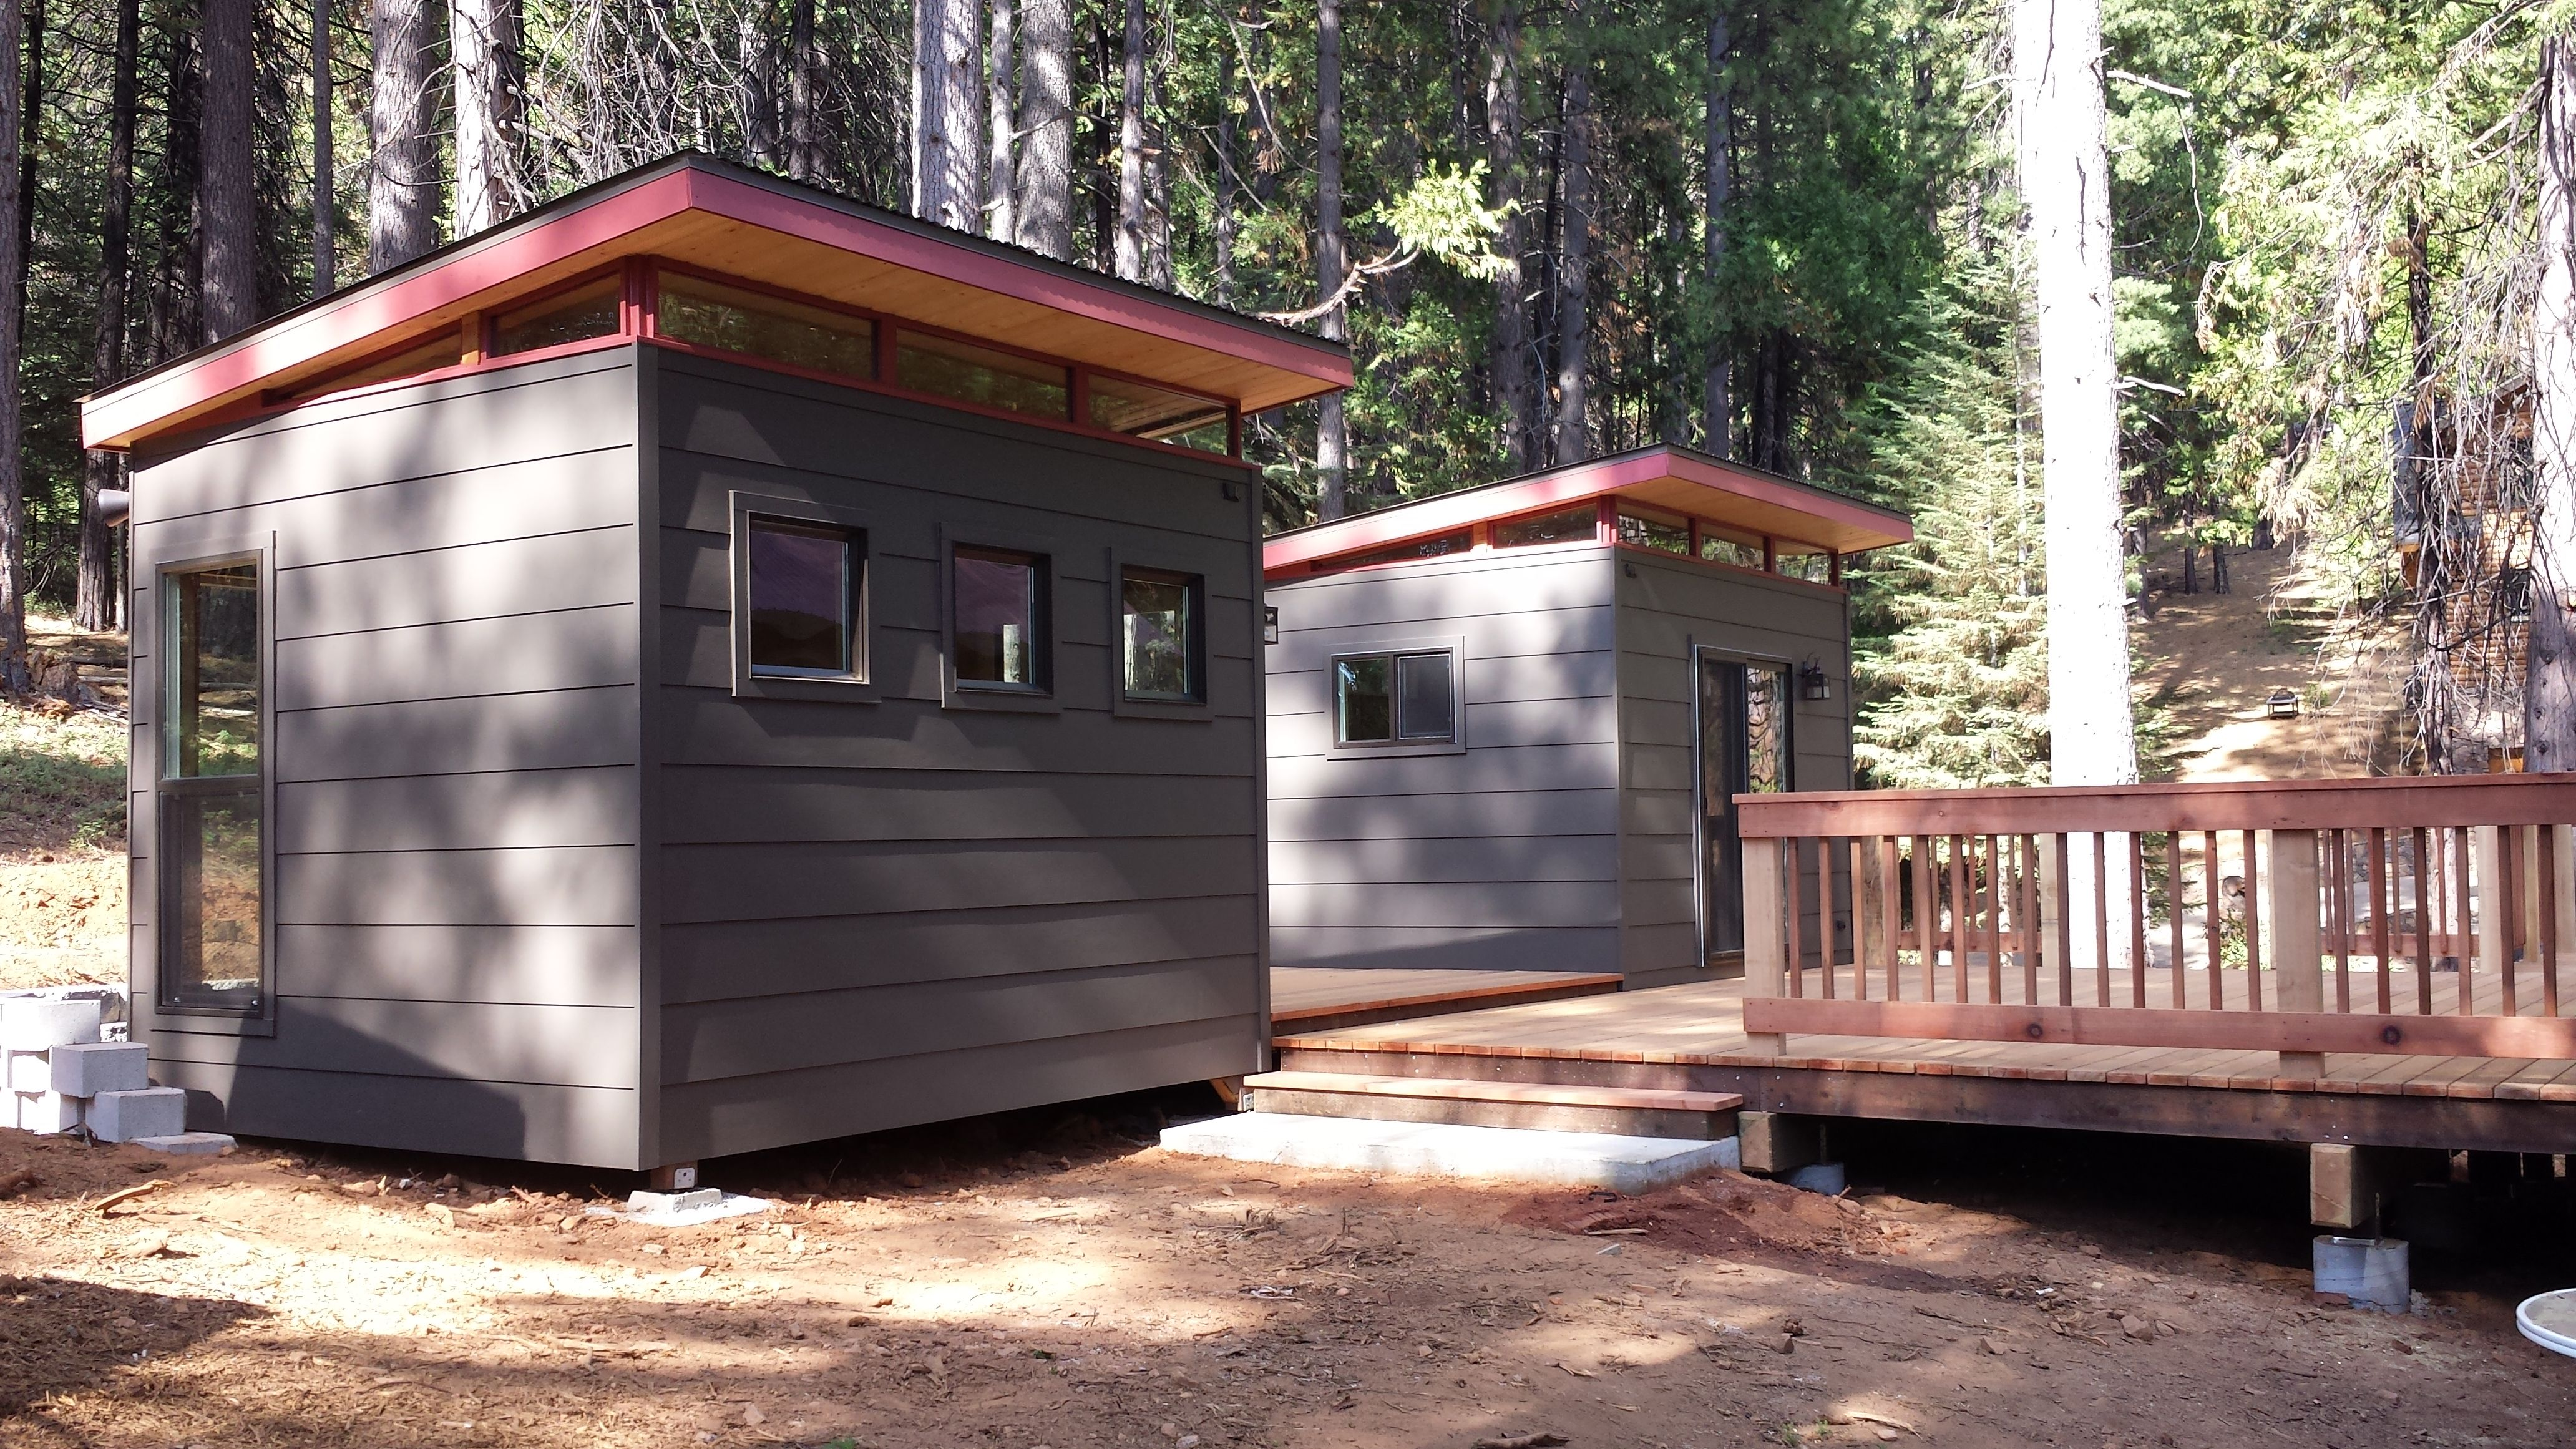 The two sheds are connected to a cabin via a custom deck.